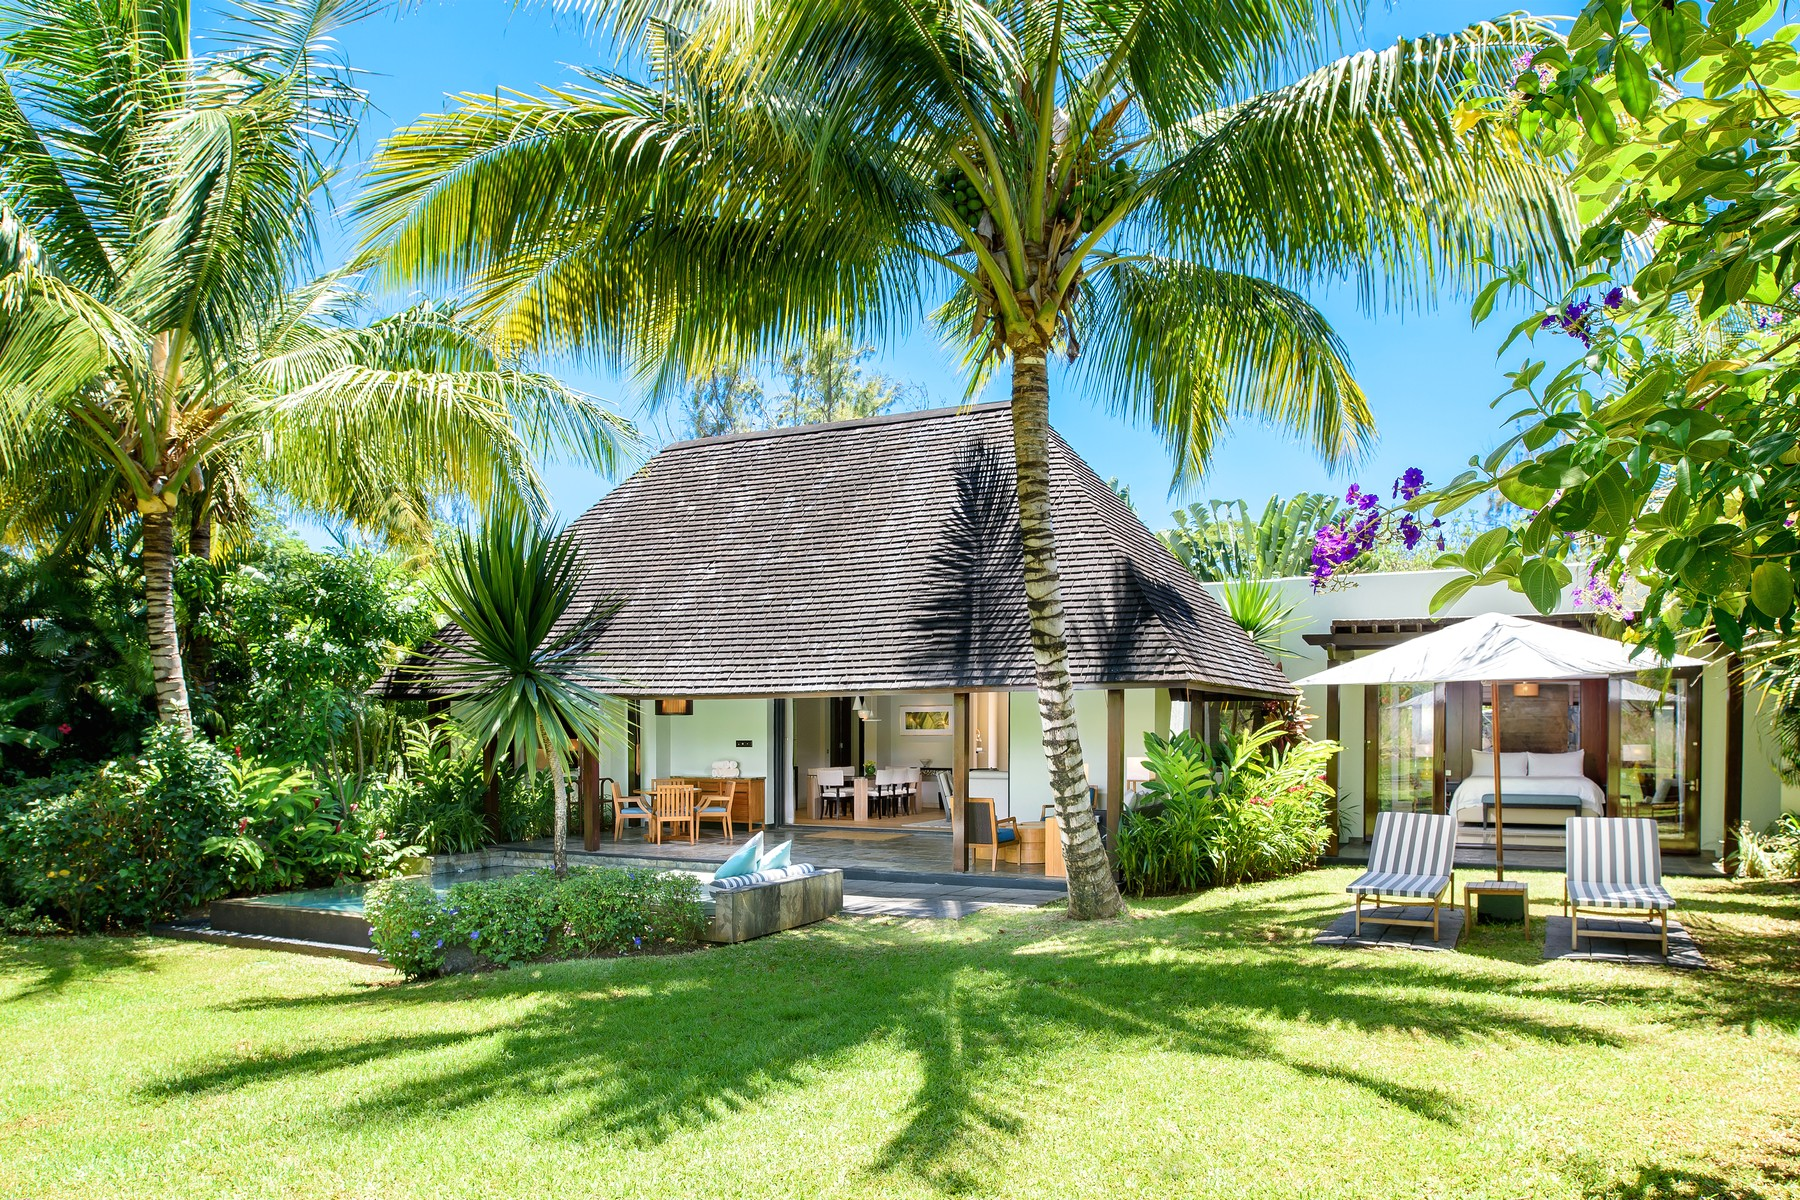 Single Family Home for Sale at Villa 215, Four Seasons Private Residence, Anahita Beau Champ, Flacq Mauritius